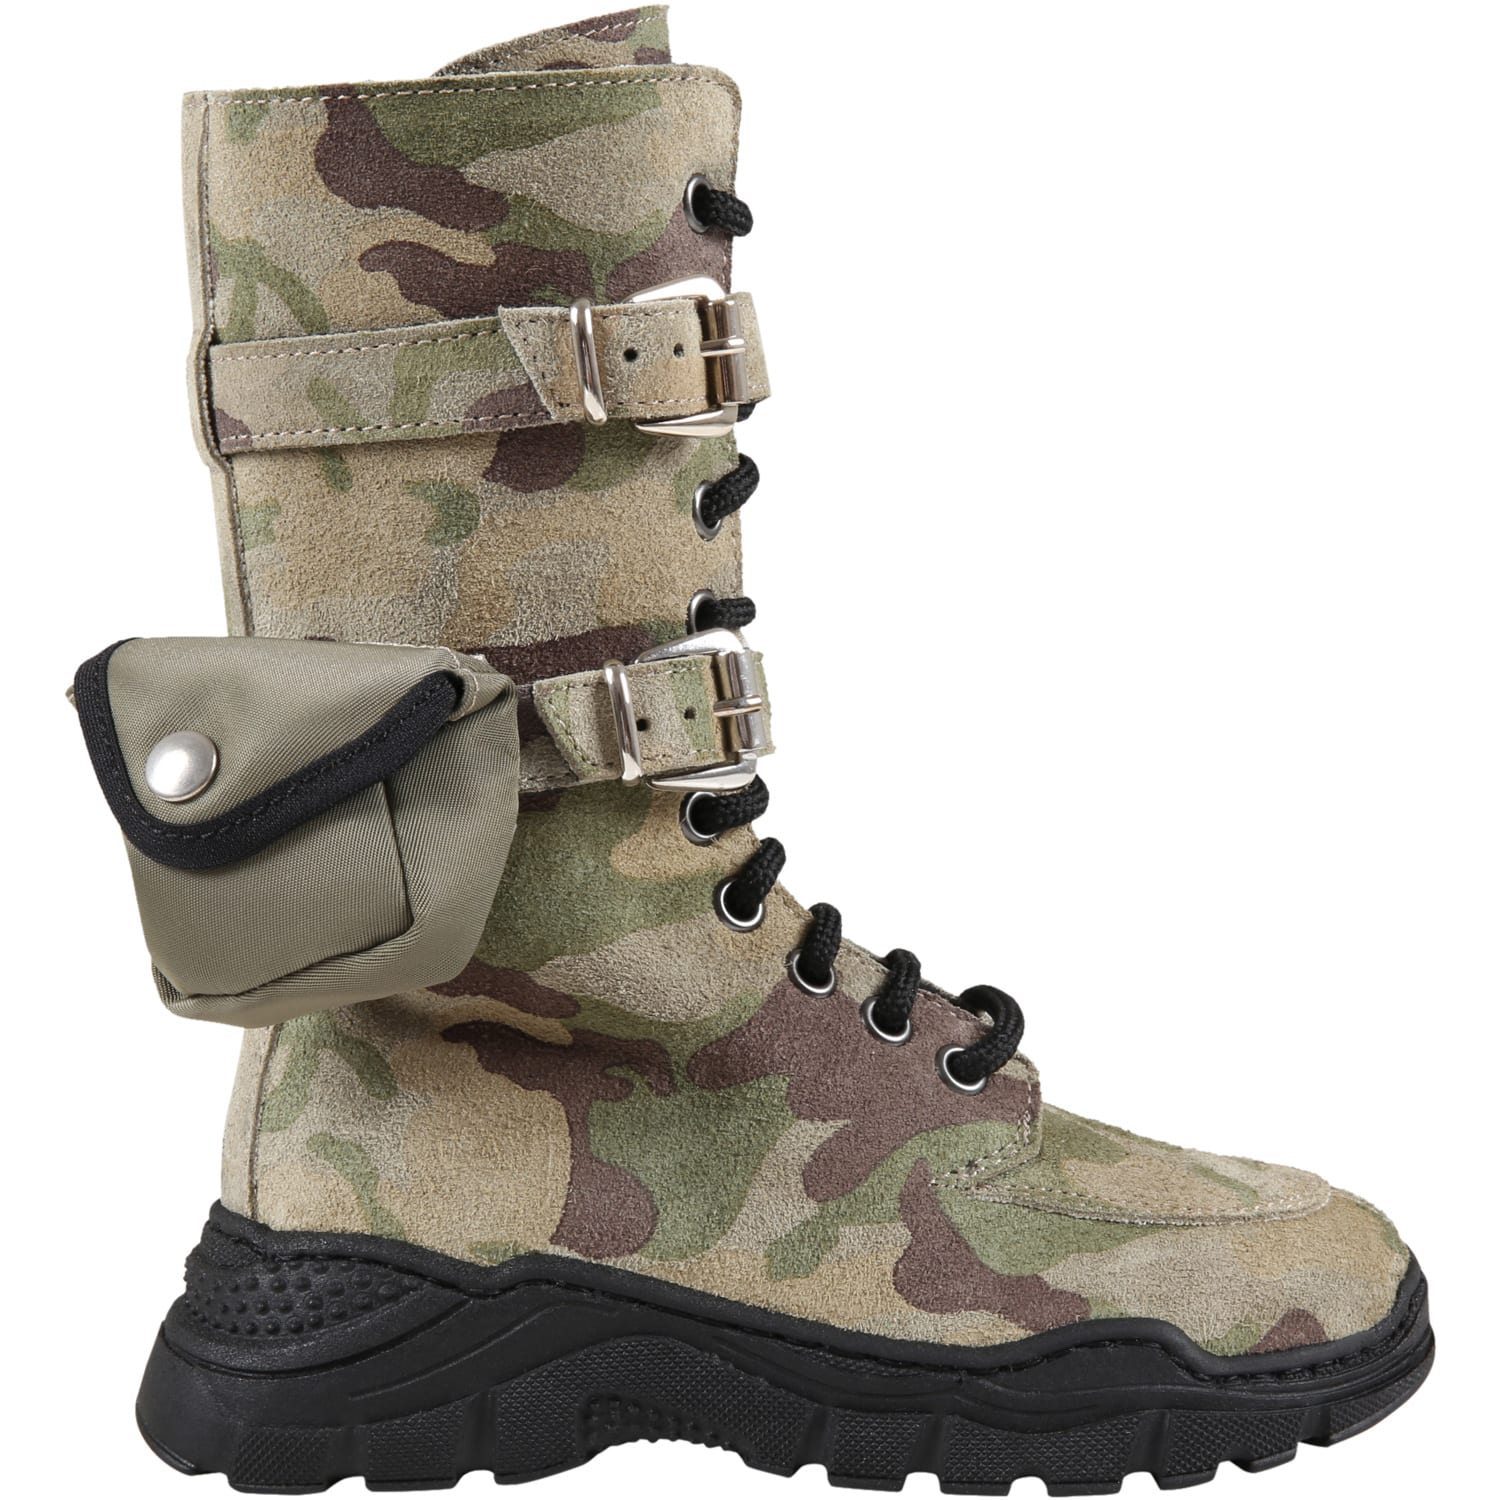 Green Boots For Kids With Pocket